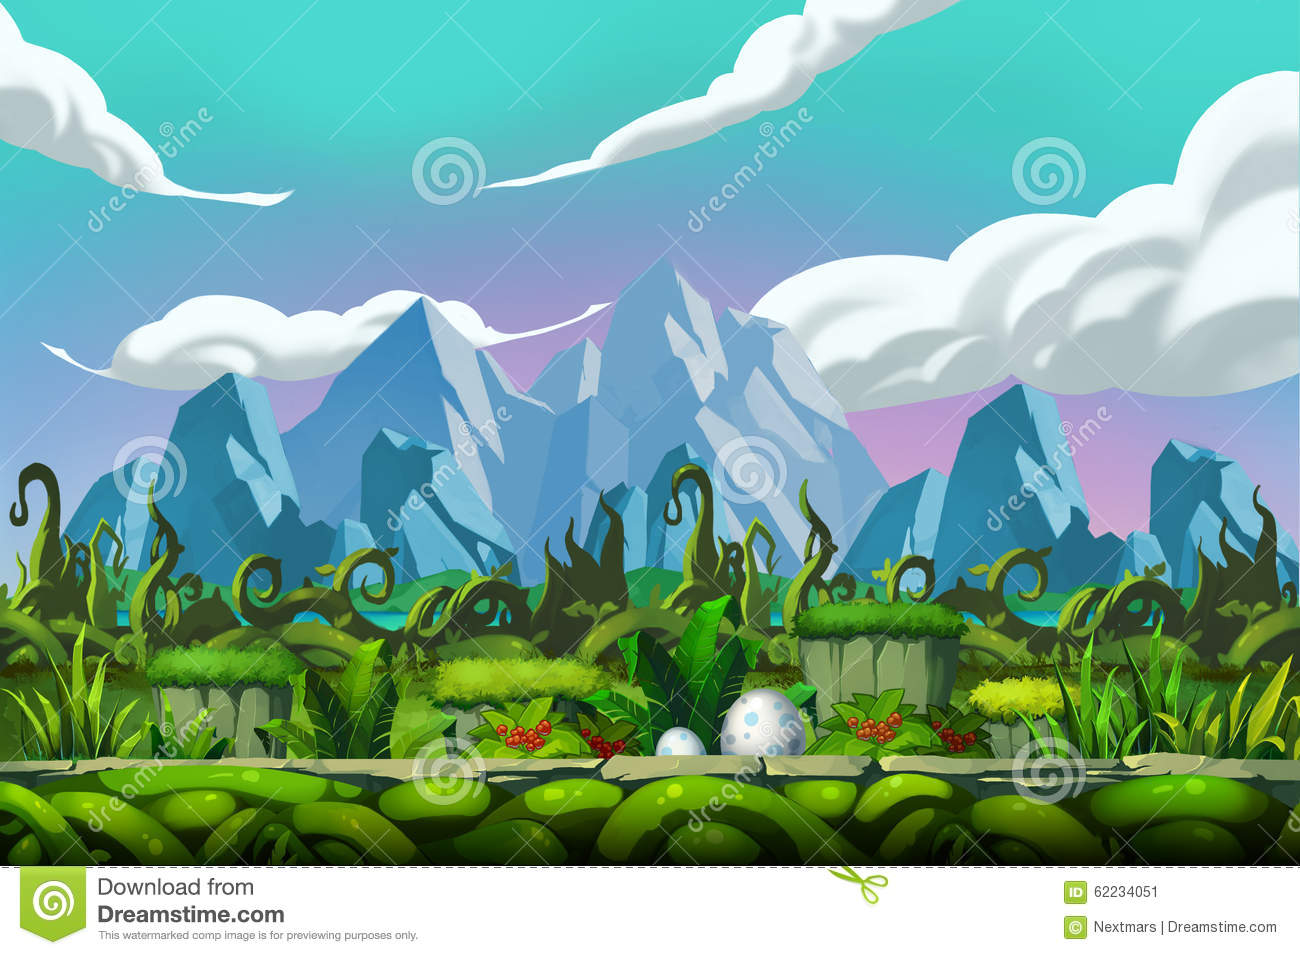 Simple Wallpaper Mountain Cartoon - illustration-thicket-forest-front-mountains-realistic-cartoon-style-scene-wallpaper-background-design-62234051  Best Photo Reference_51210.jpg